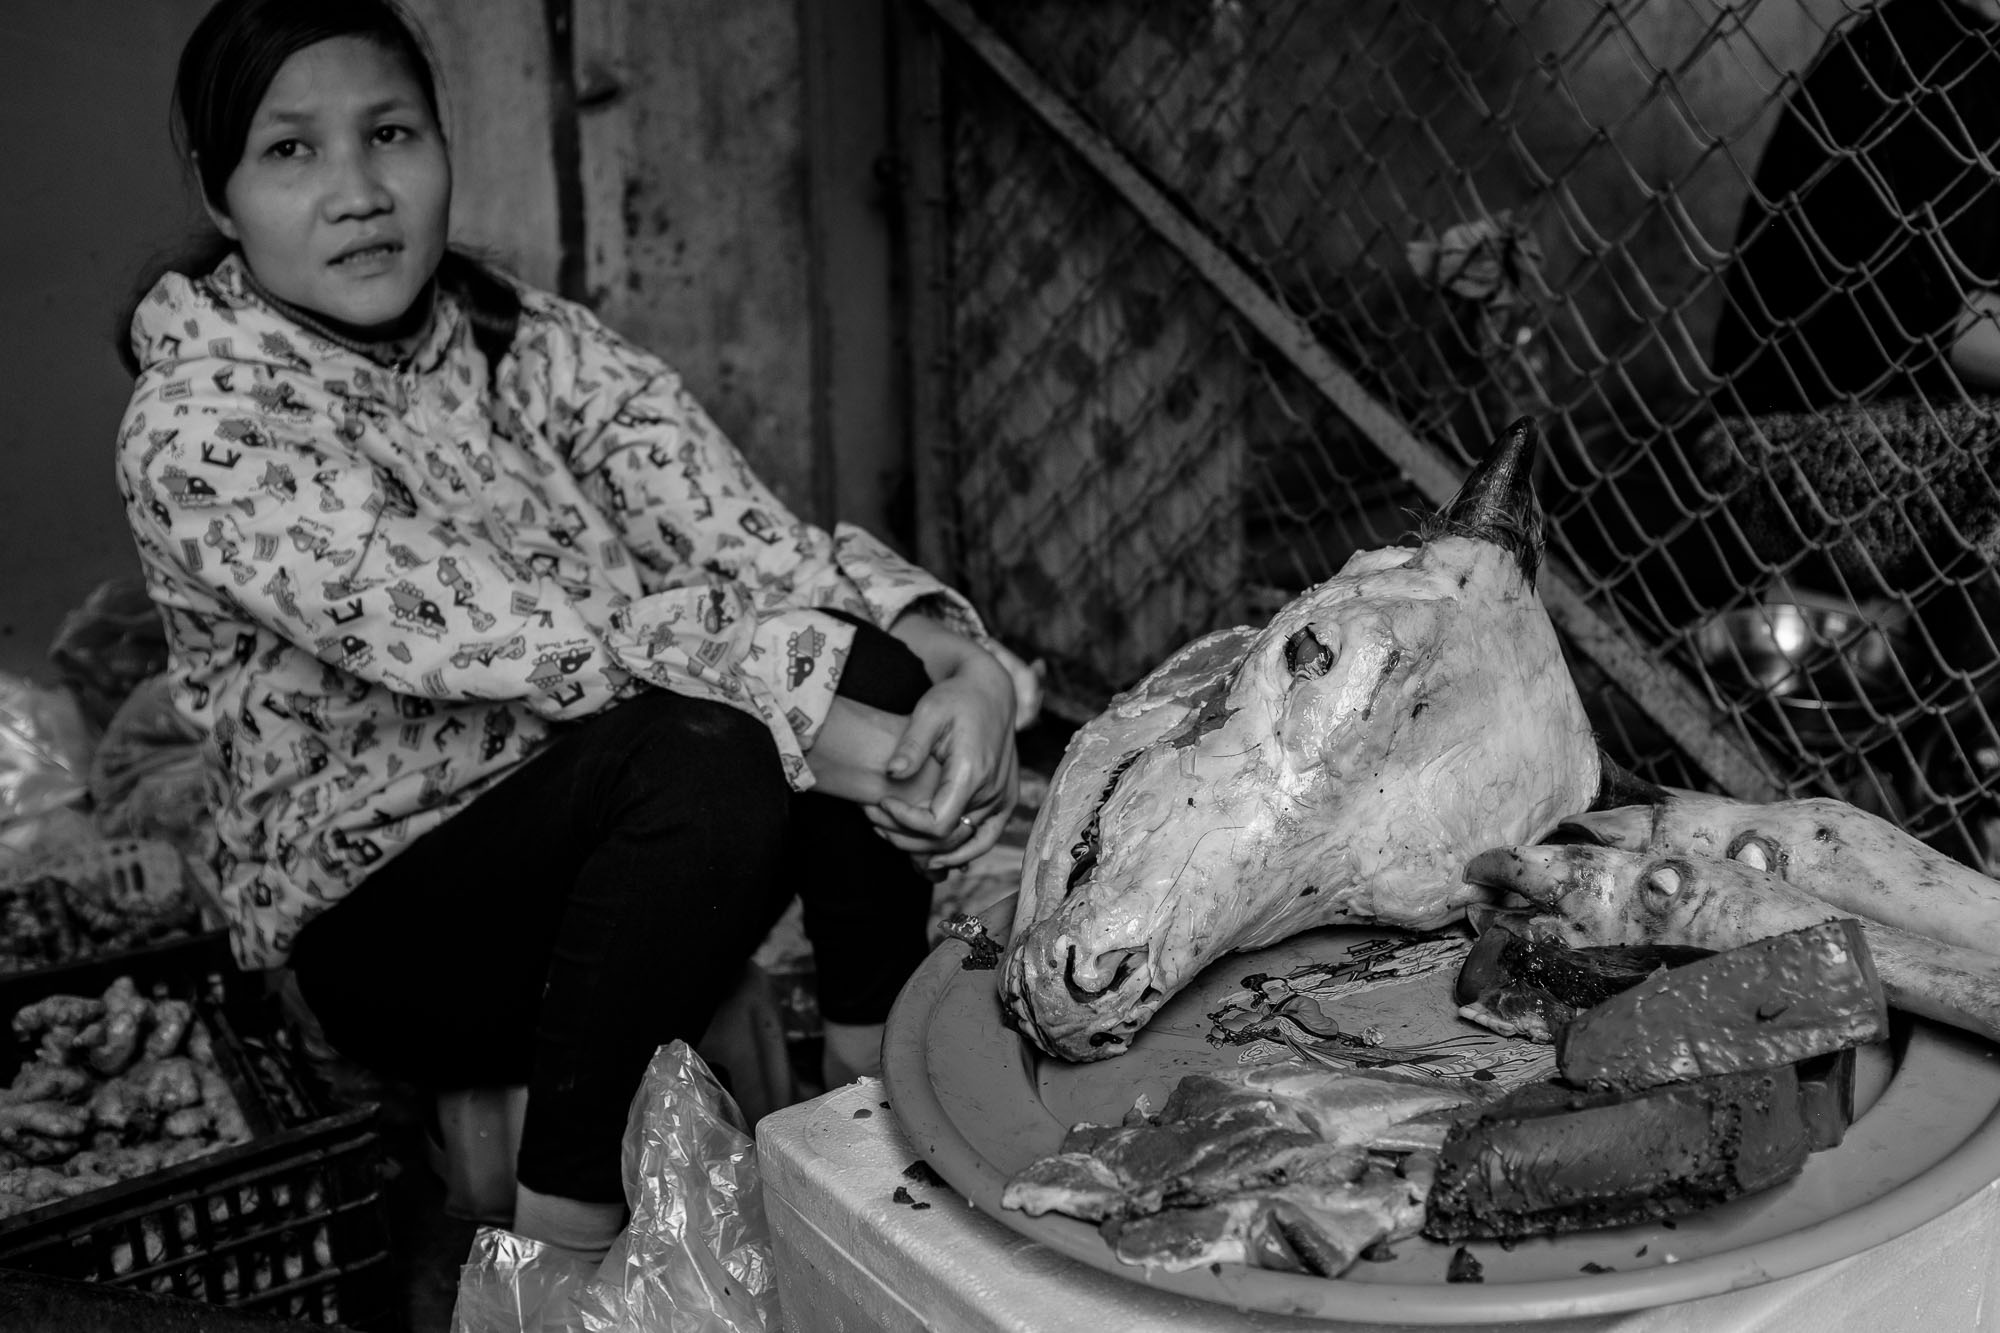 A dead animal head on a plate with the vendor sitting behind it